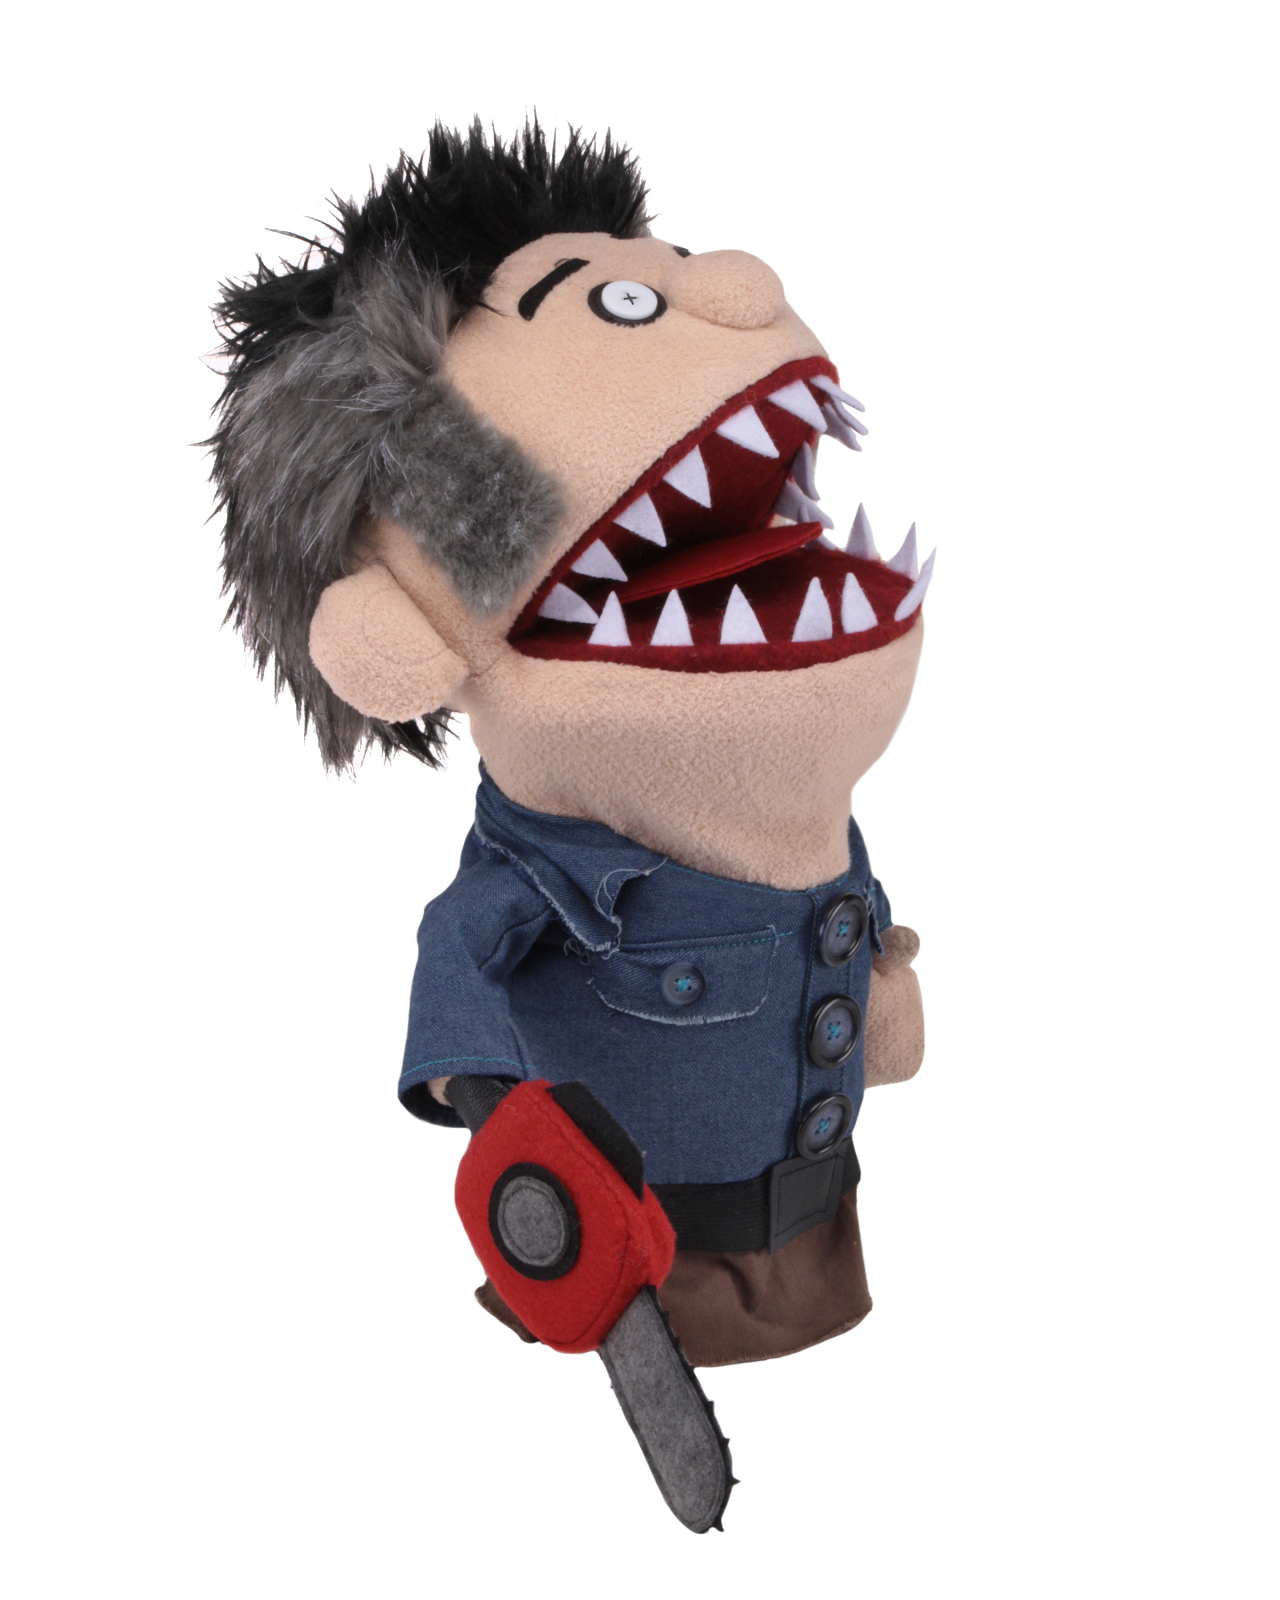 Ash Vs Evil Dead 15-Inch Possessed Ashy Slashy Puppet Prop Replica by Neca